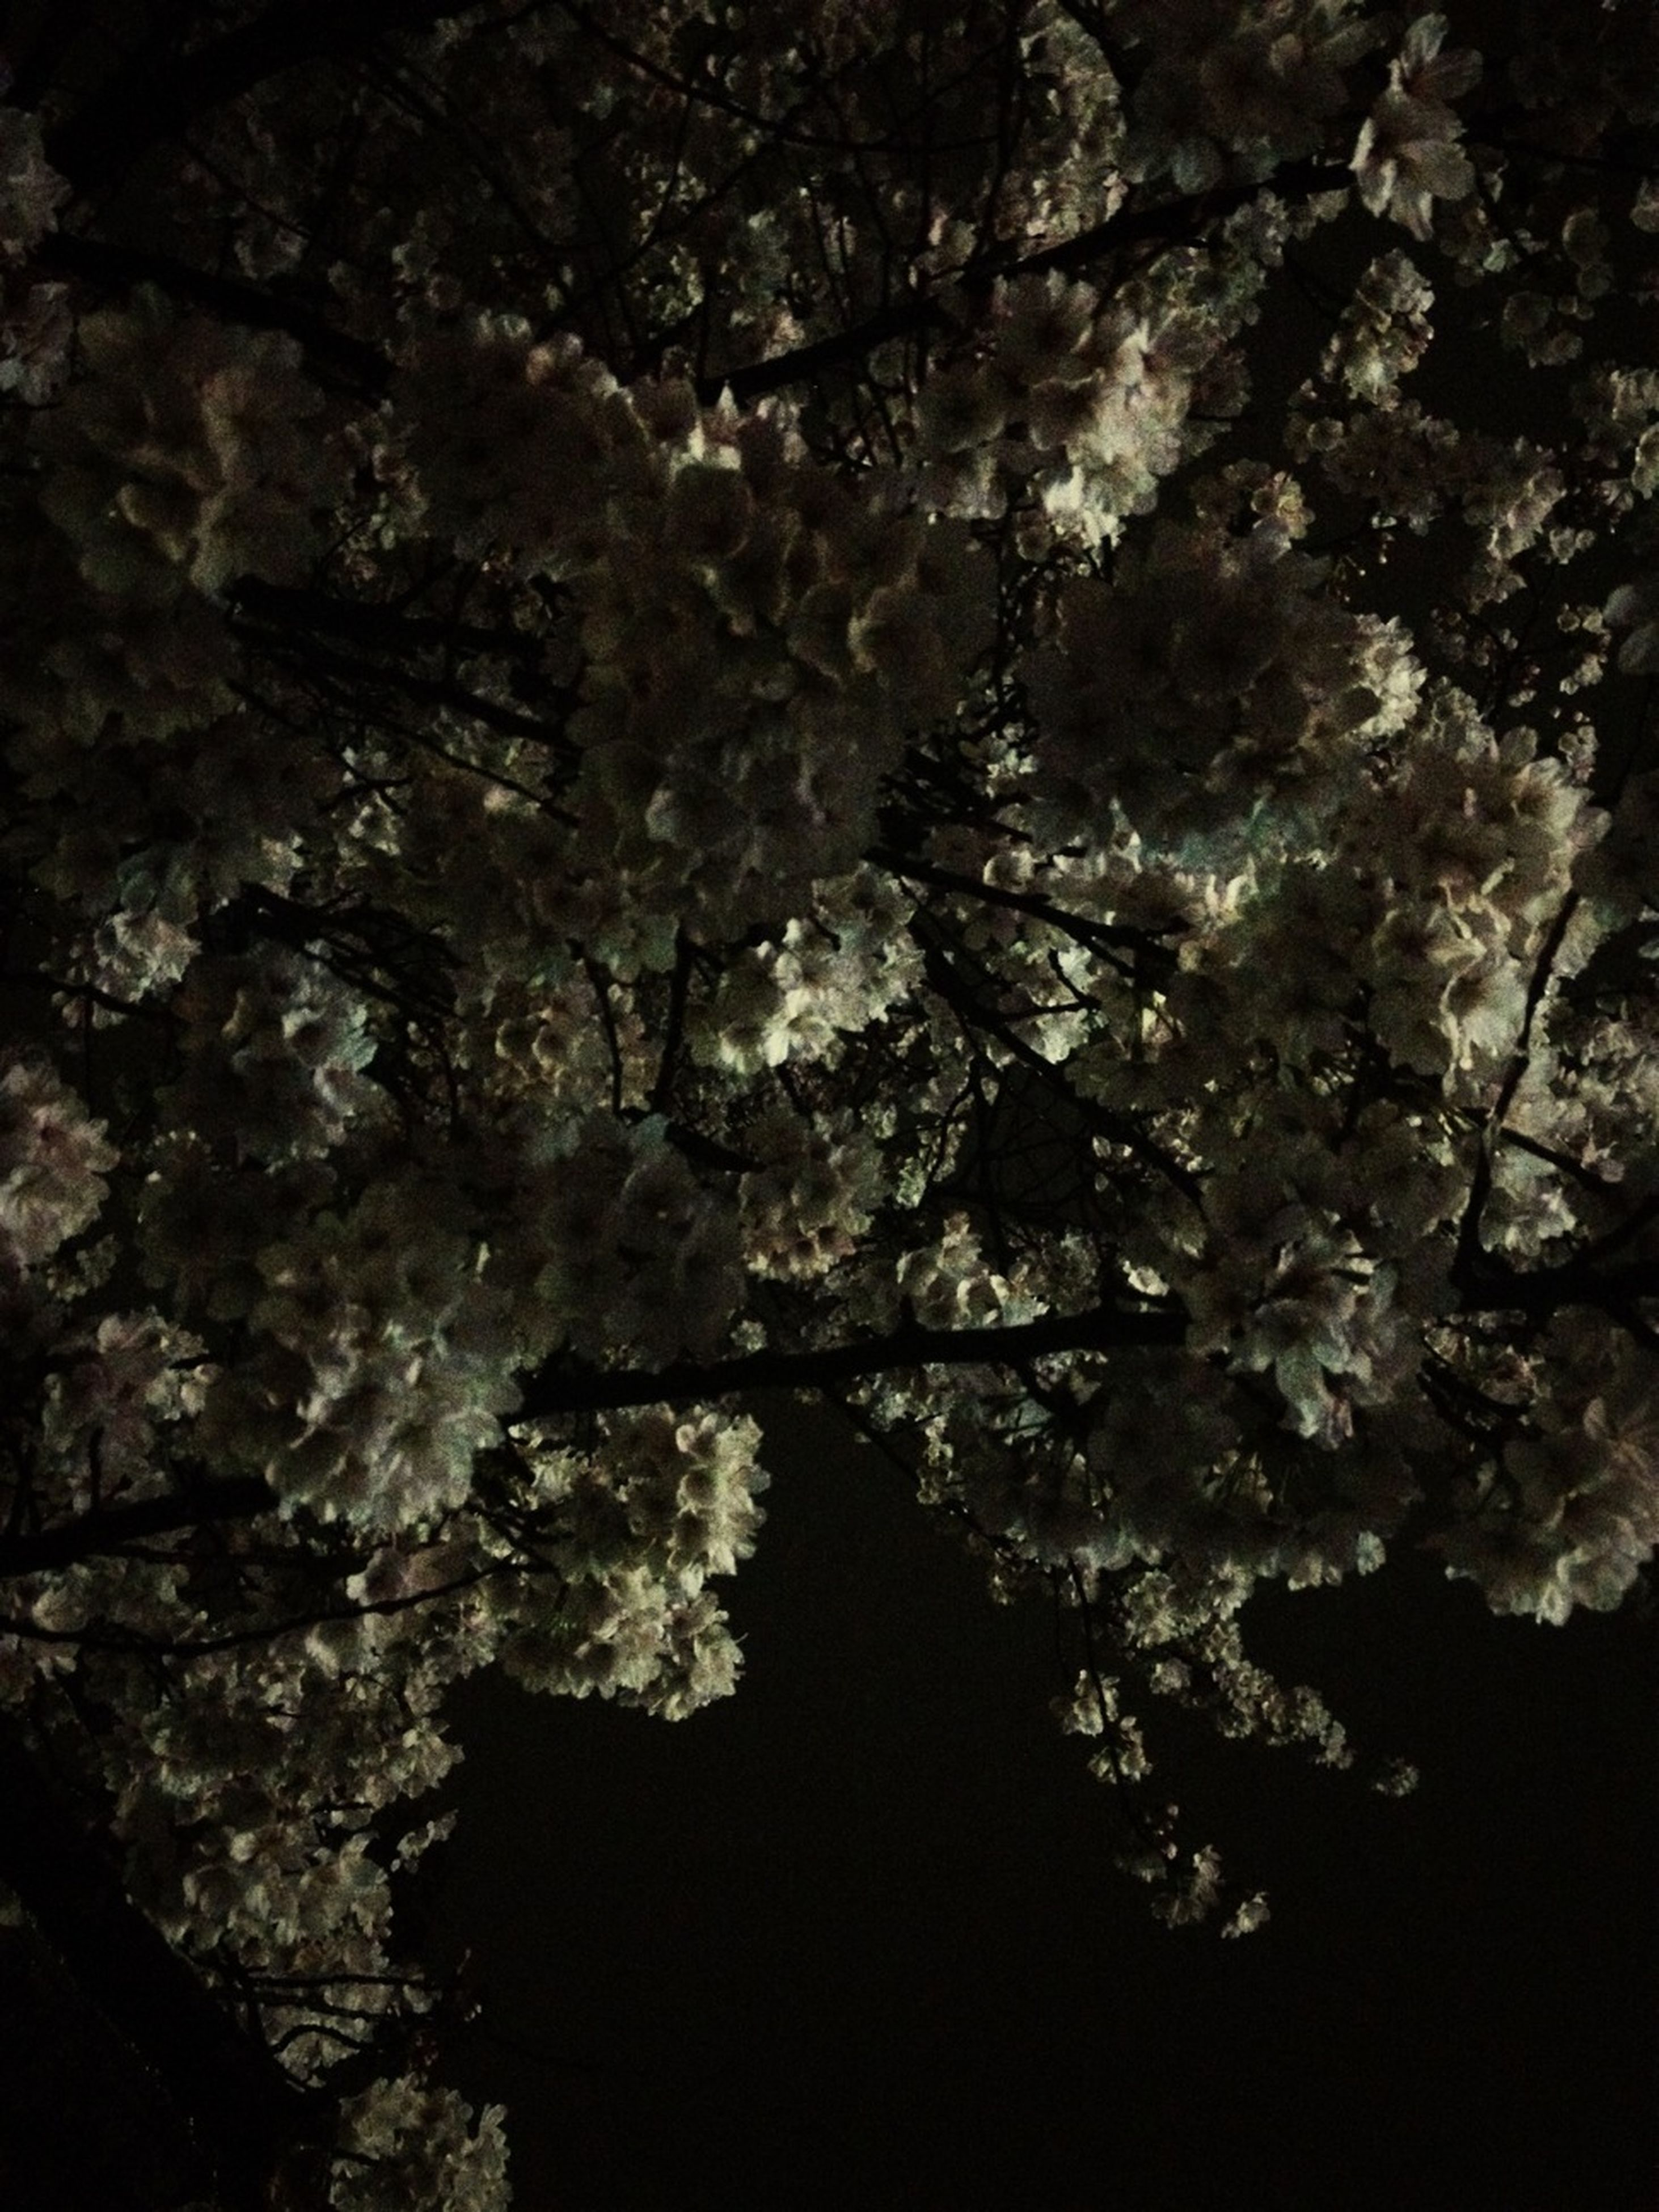 tree, growth, nature, branch, low angle view, beauty in nature, tree trunk, tranquility, no people, outdoors, close-up, textured, night, rock - object, flower, sunlight, backgrounds, plant, full frame